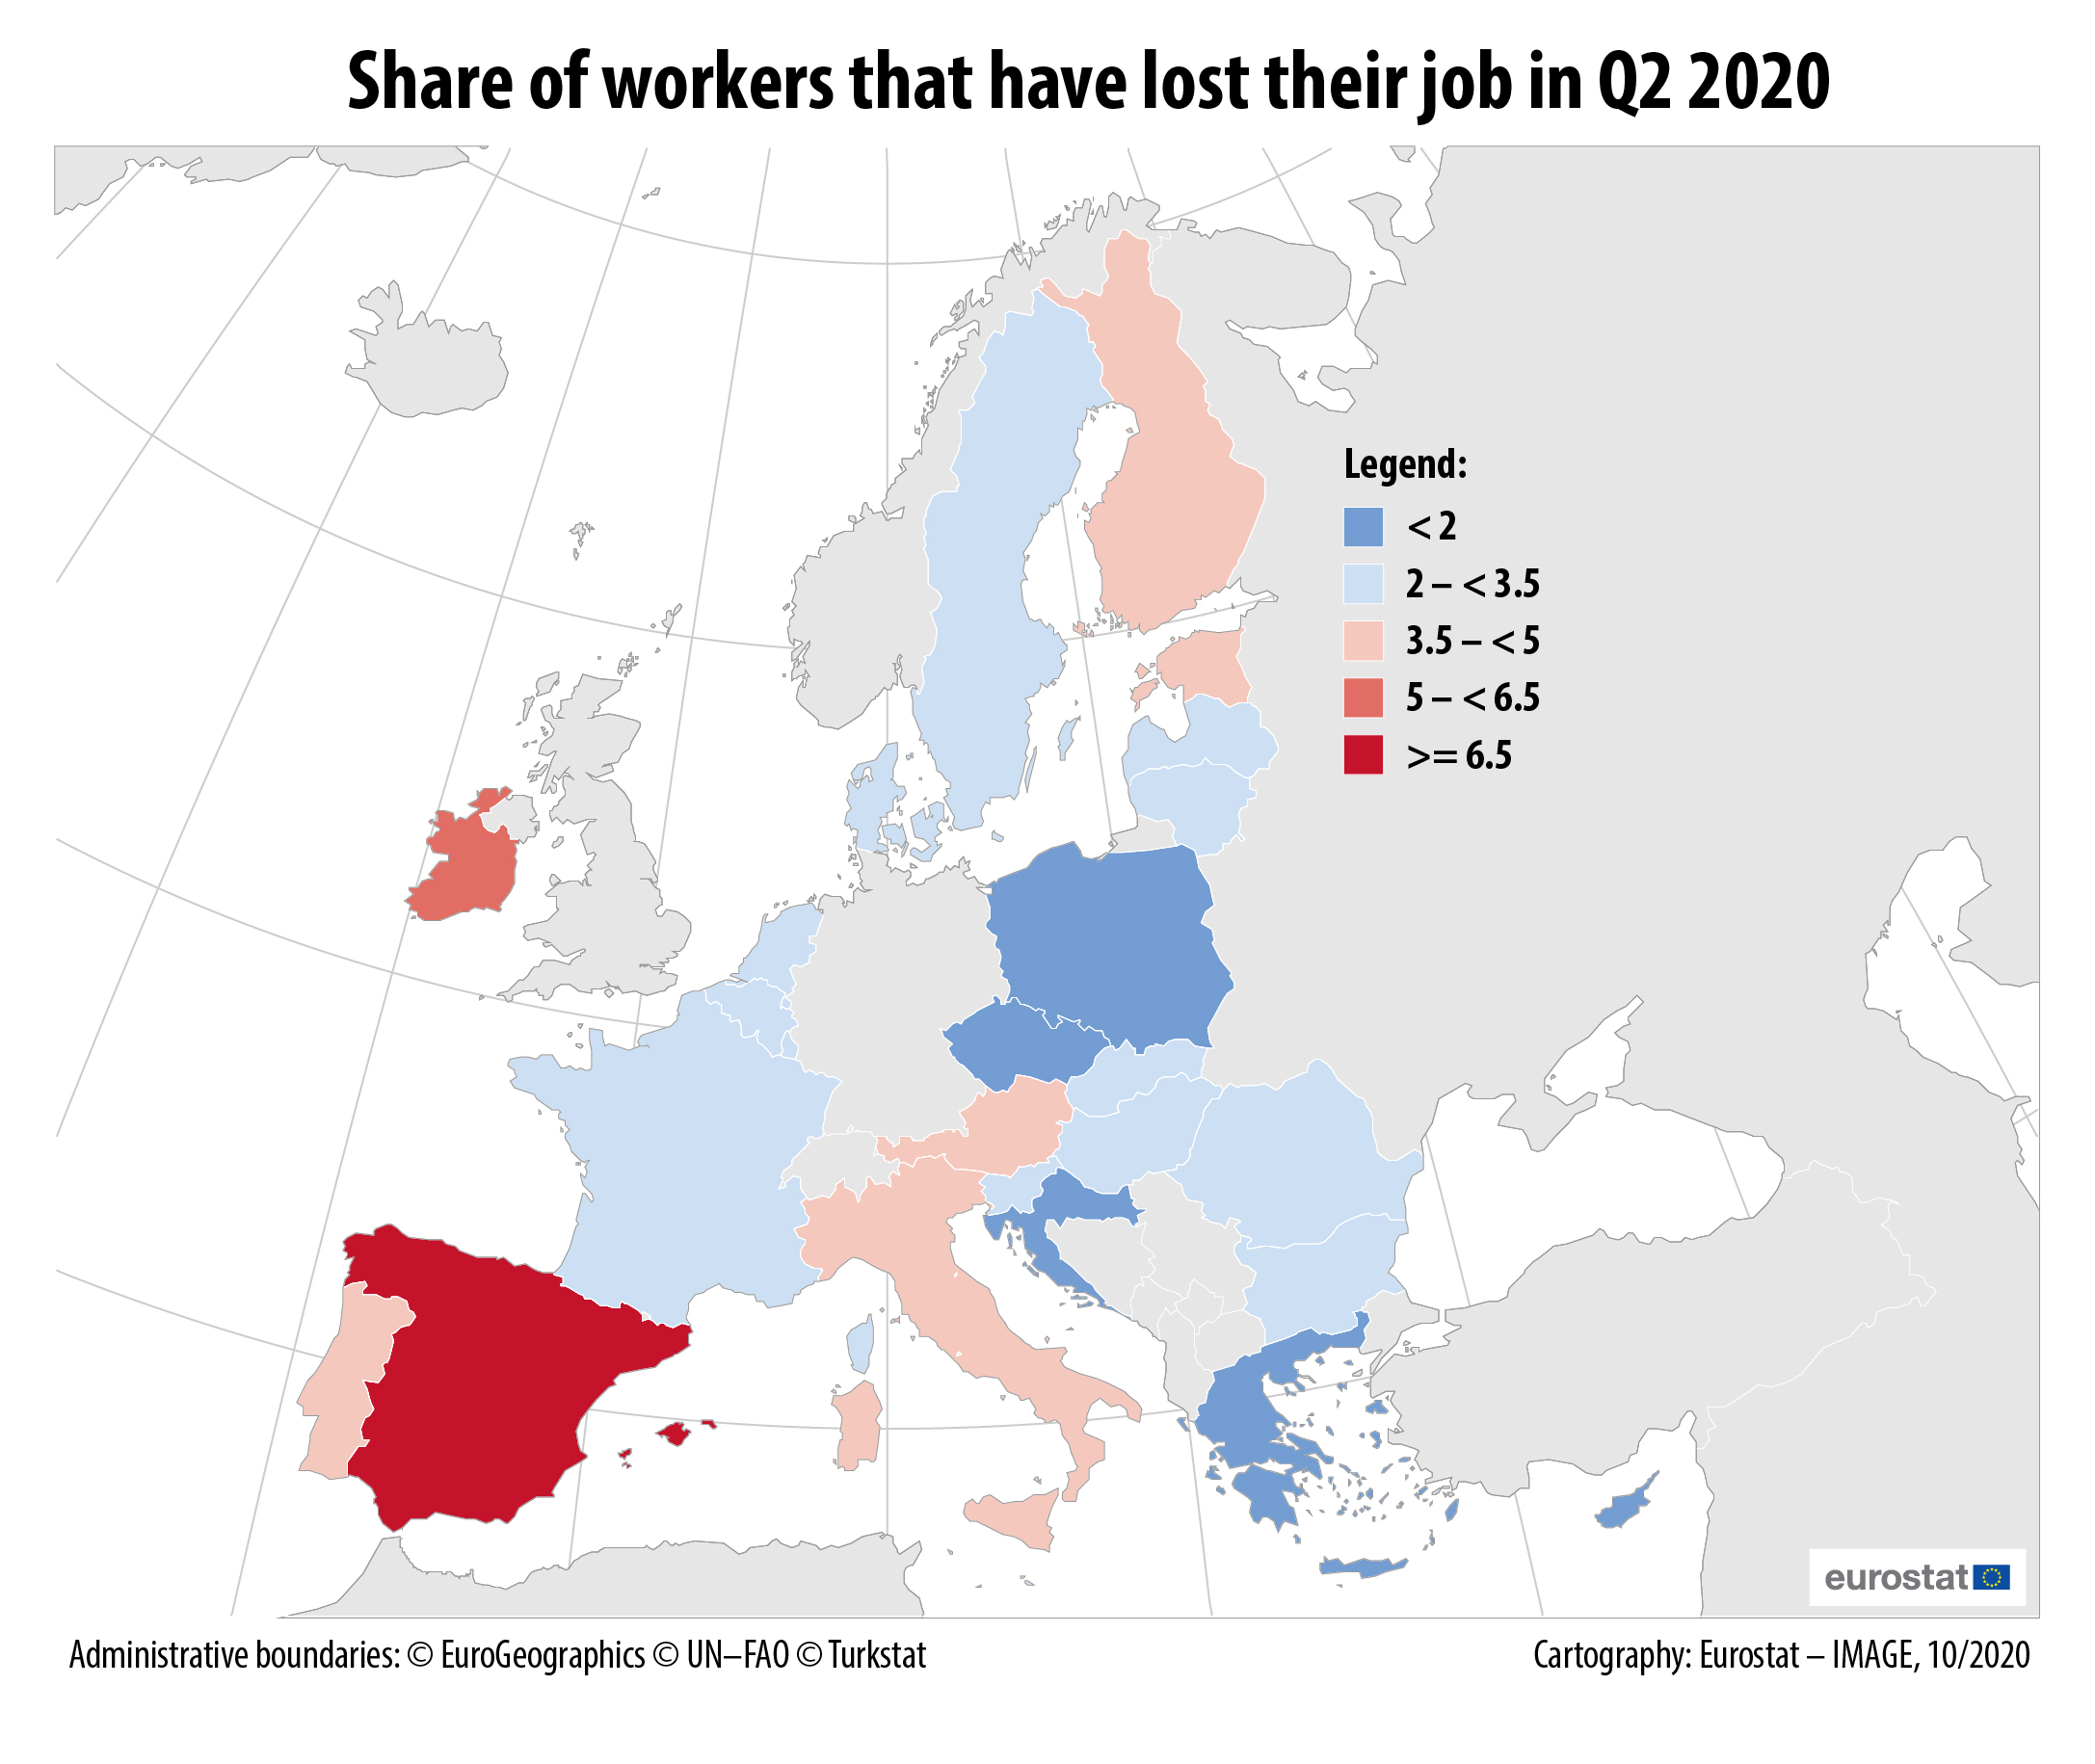 Share of workers that lost their job in Q2 2020